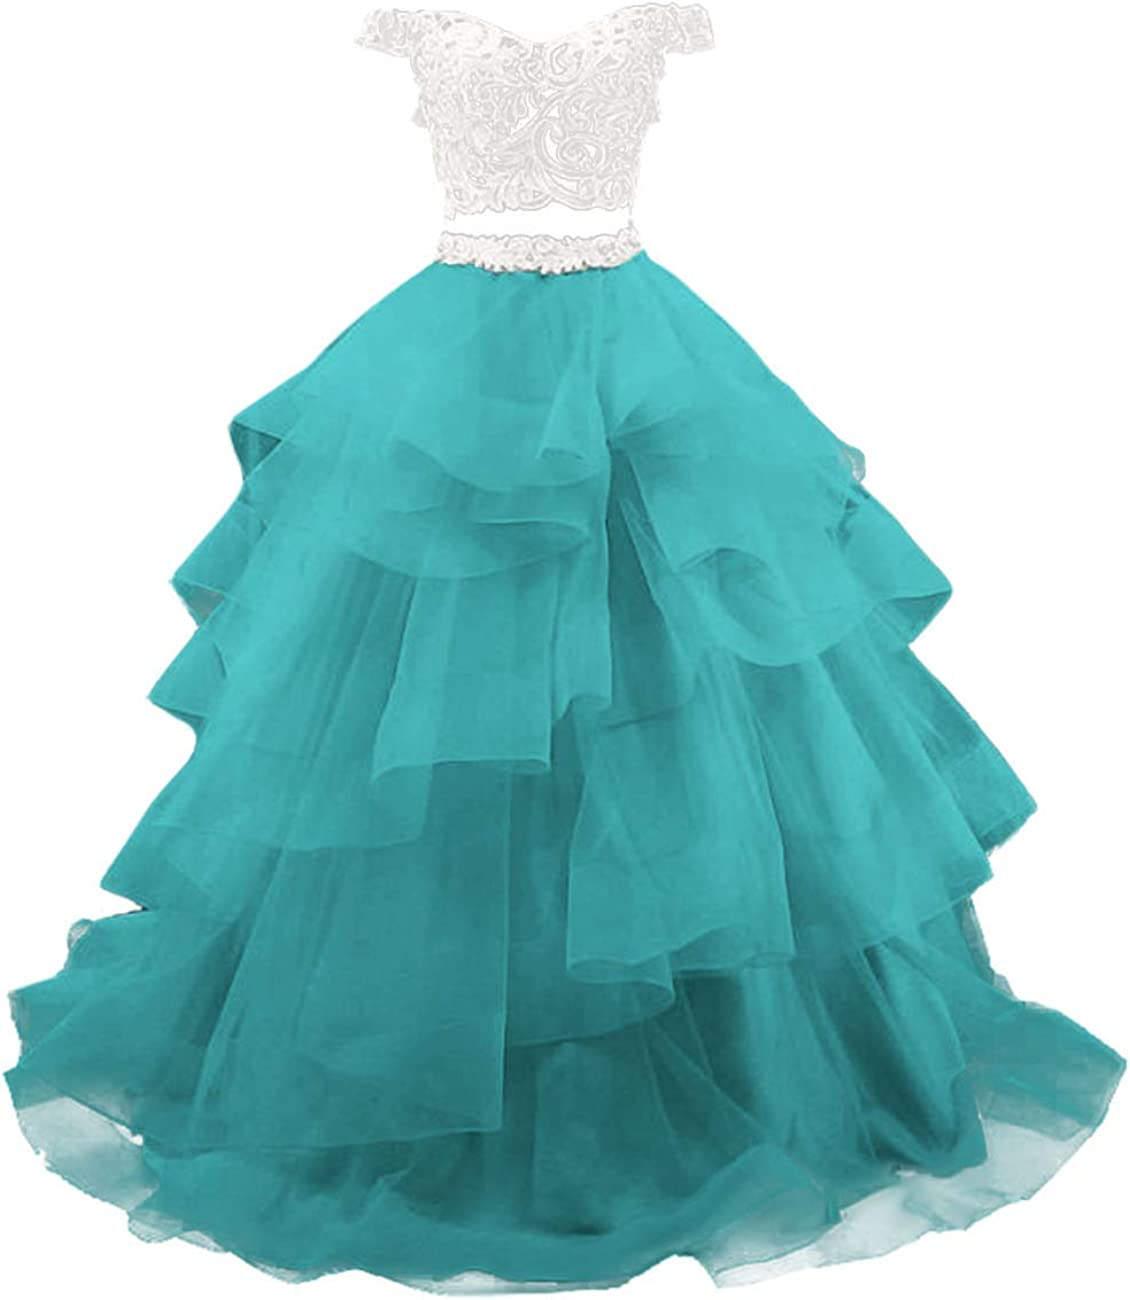 H.S.D Ball Gown Prom Excellent Dresses Off The 16 trend rank Sweet Dress Shoulder Qui